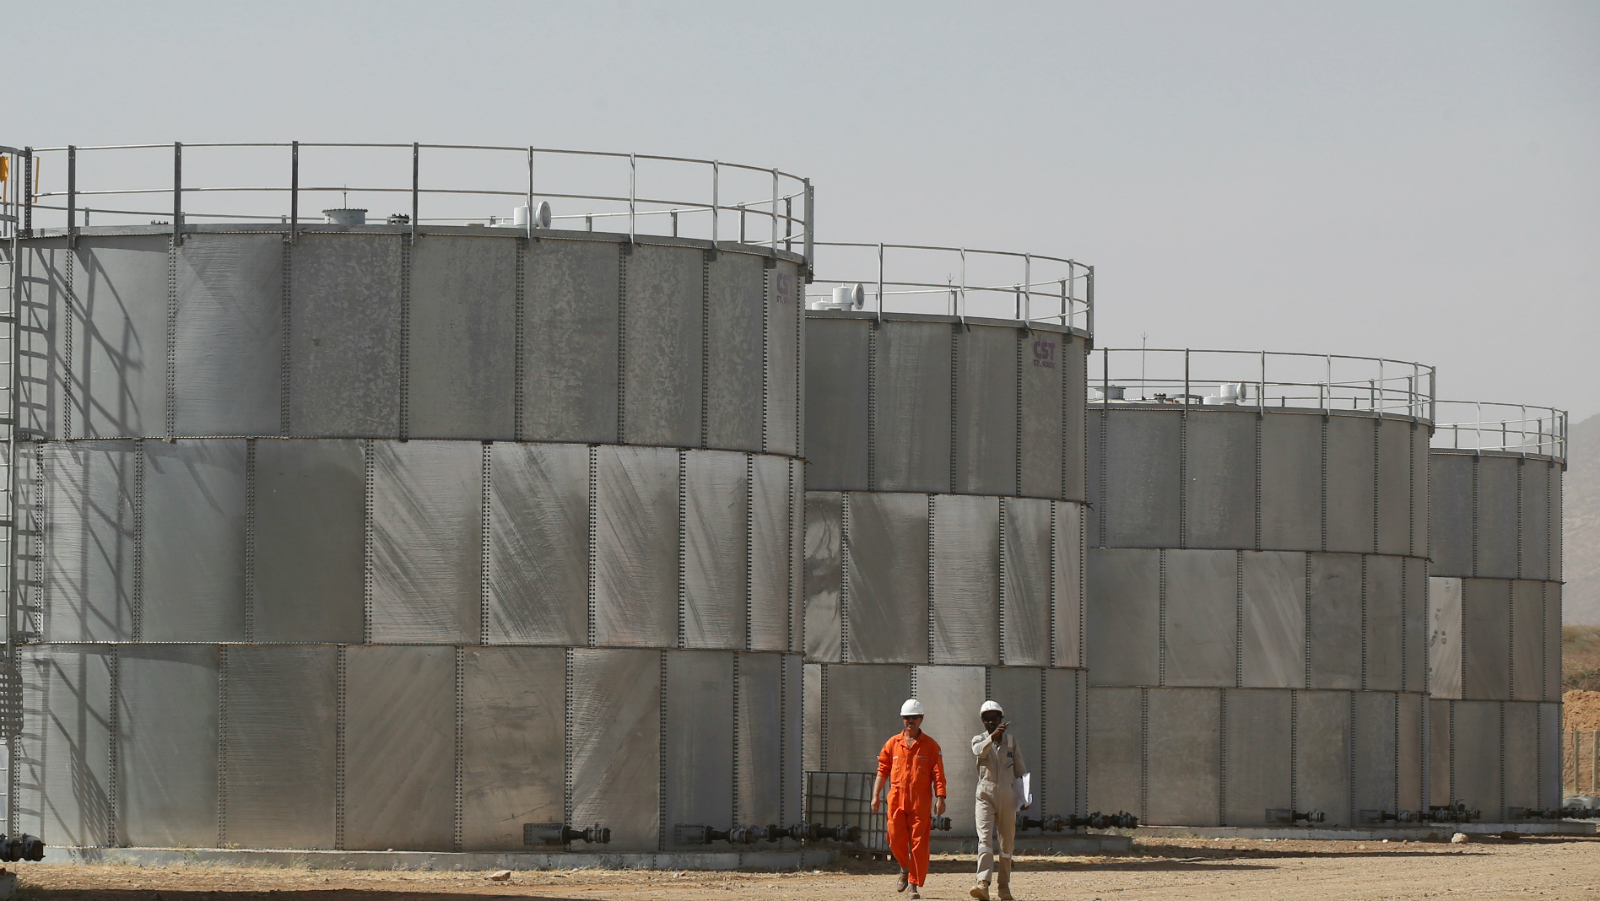 Workers walk past storage tanks at Tullow Oil's Ngamia 8 drilling site in Lokichar, Turkana County, Kenya, February 8, 2018. Picture taken February 8, 2018.